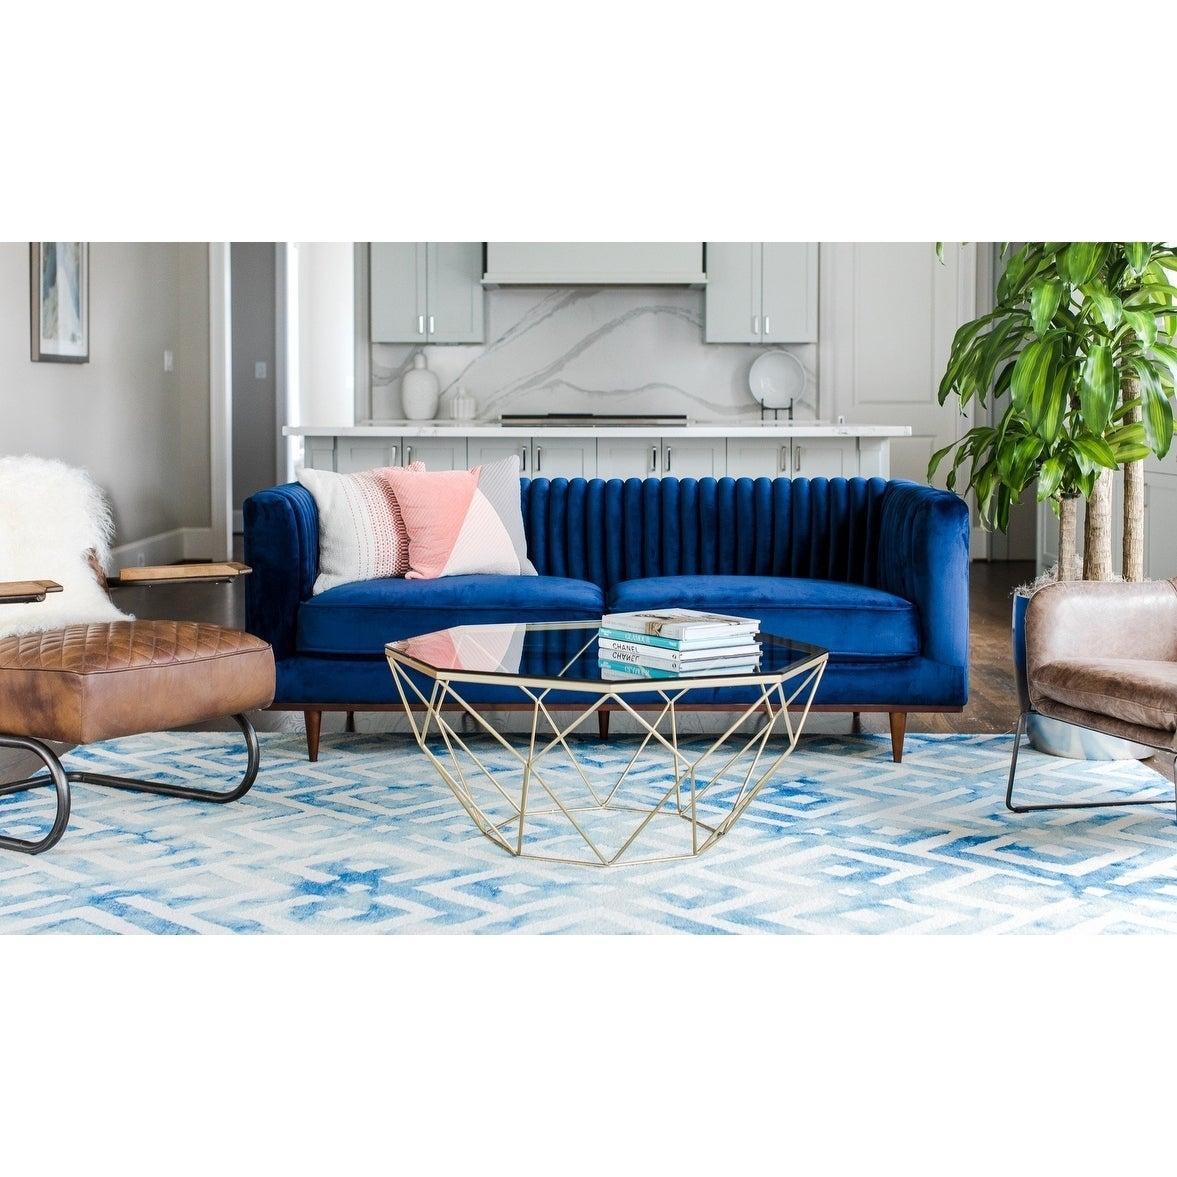 Shop jada blue velvet sofa midcentury modern sofa for living room channel tufted free shipping today overstock com 21485042